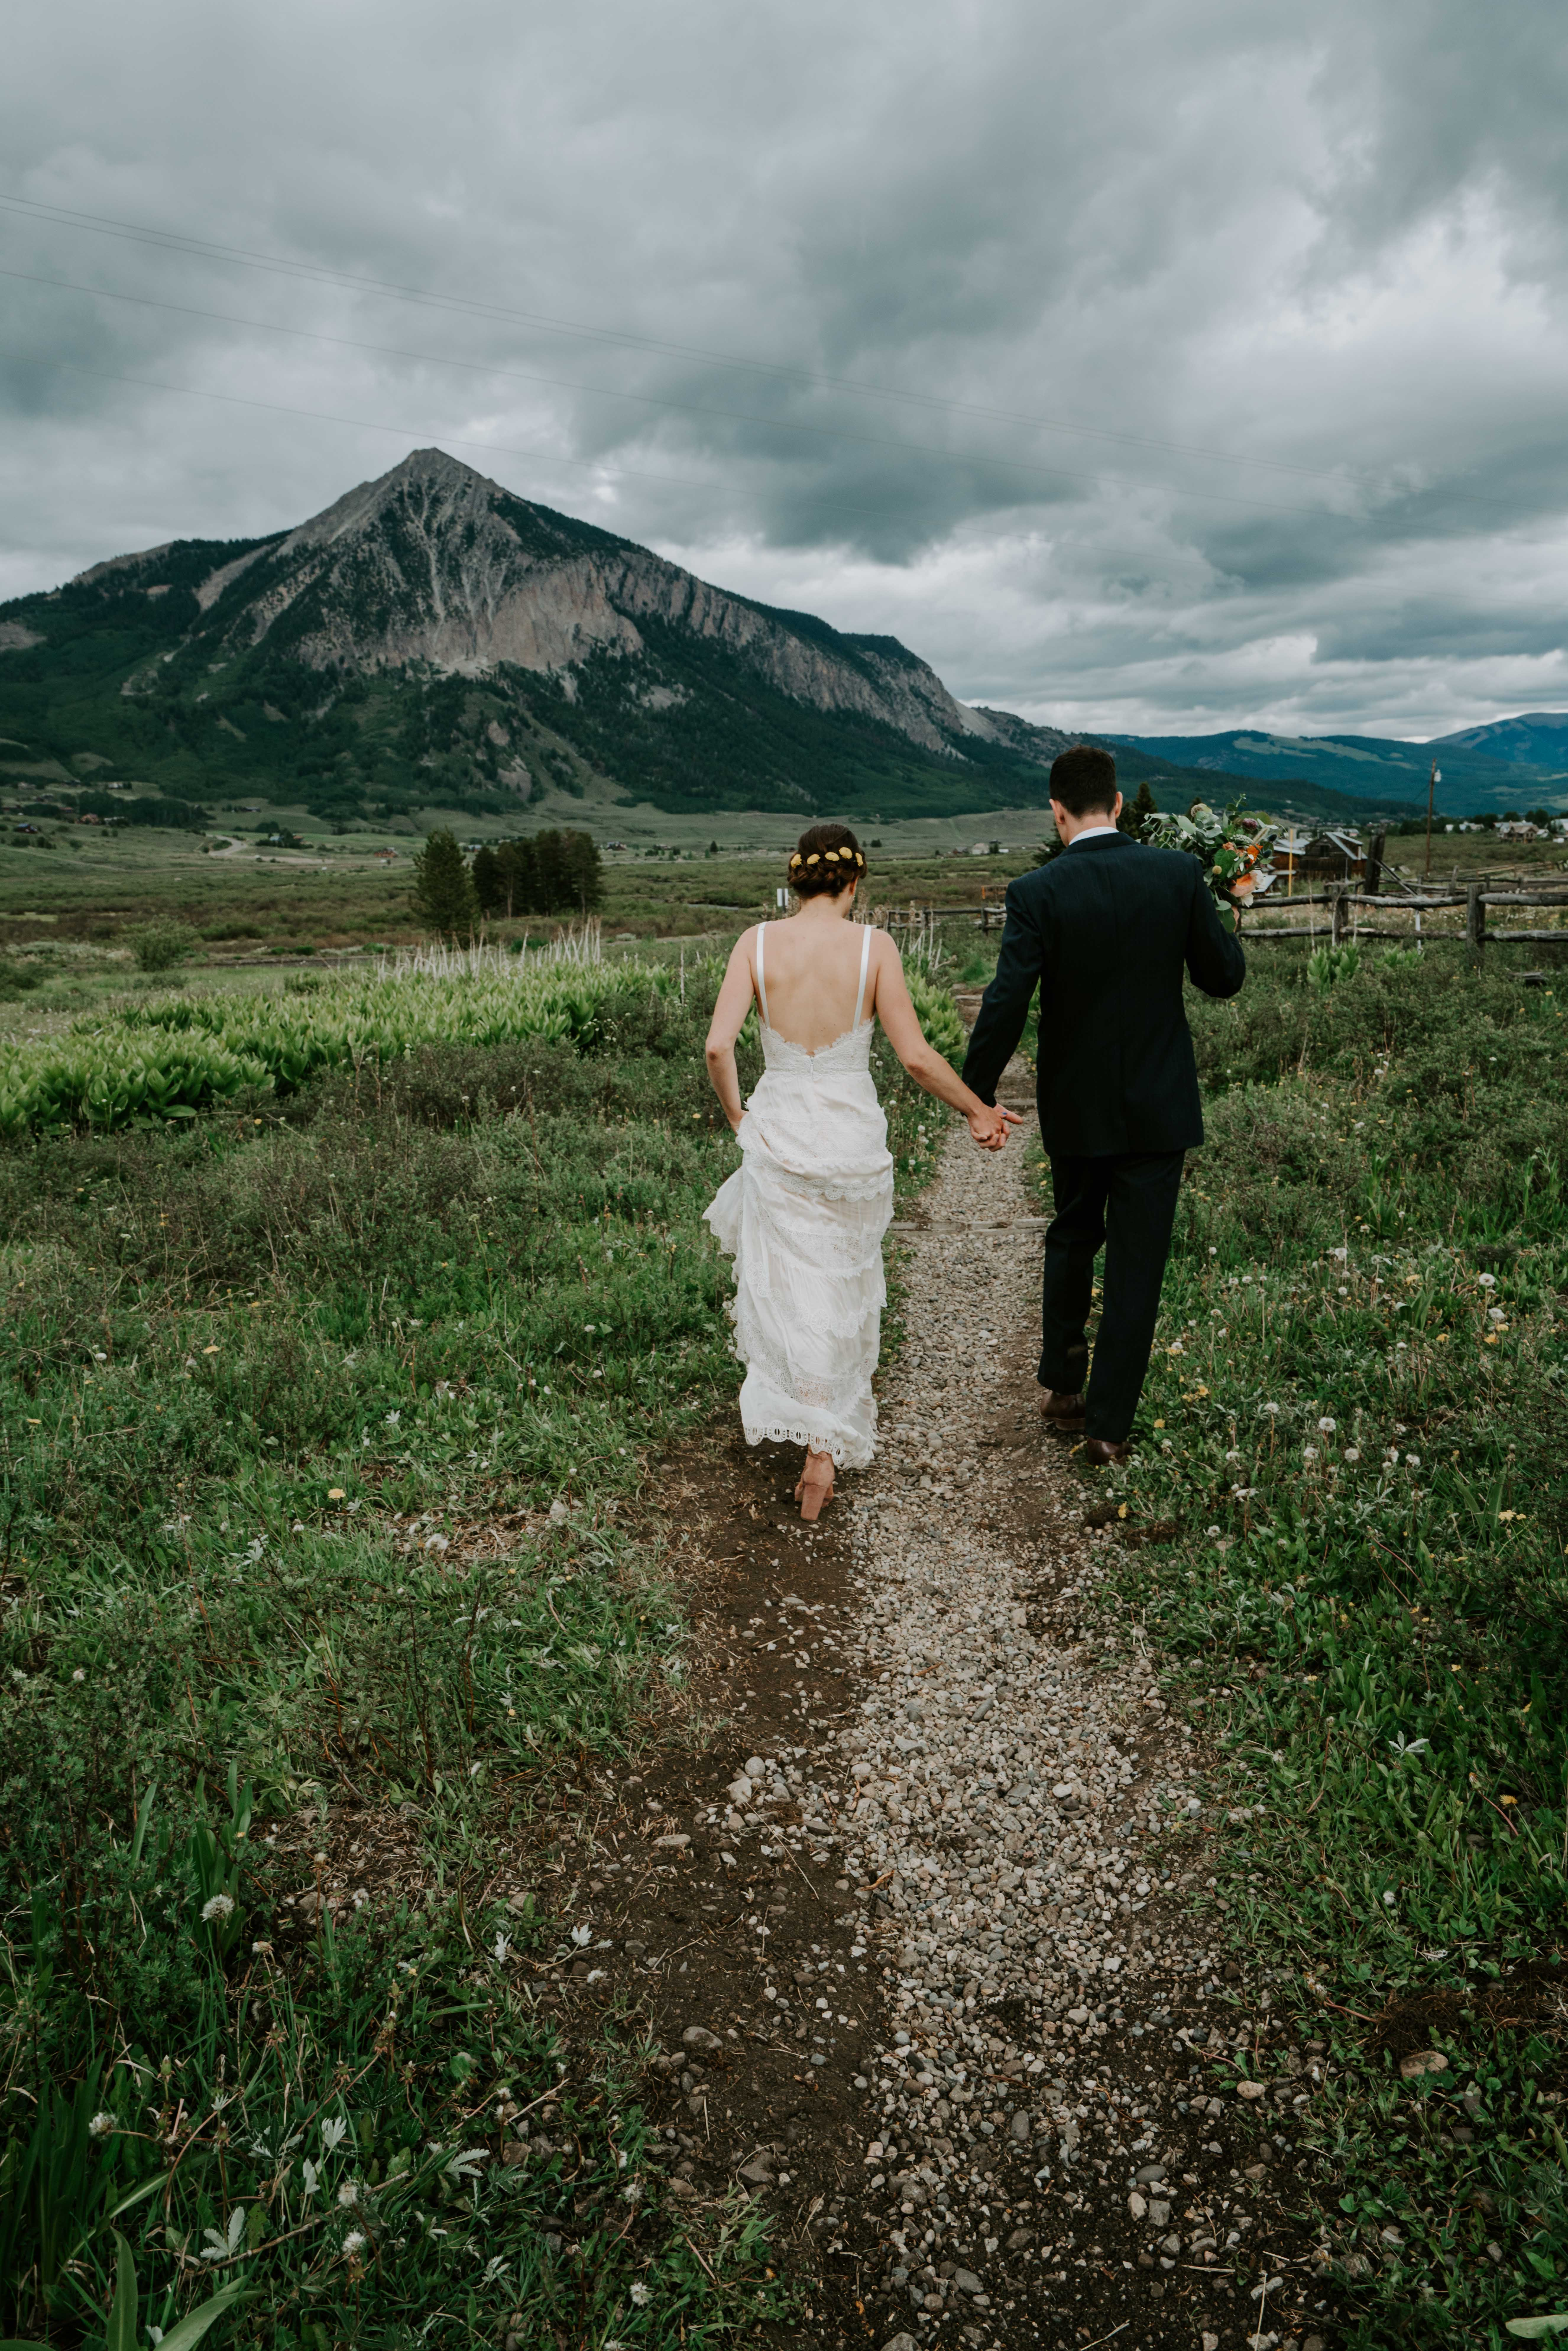 Laura_Alexe_Wedding_Crested_Butte_MegONeillPhotography__180616_93